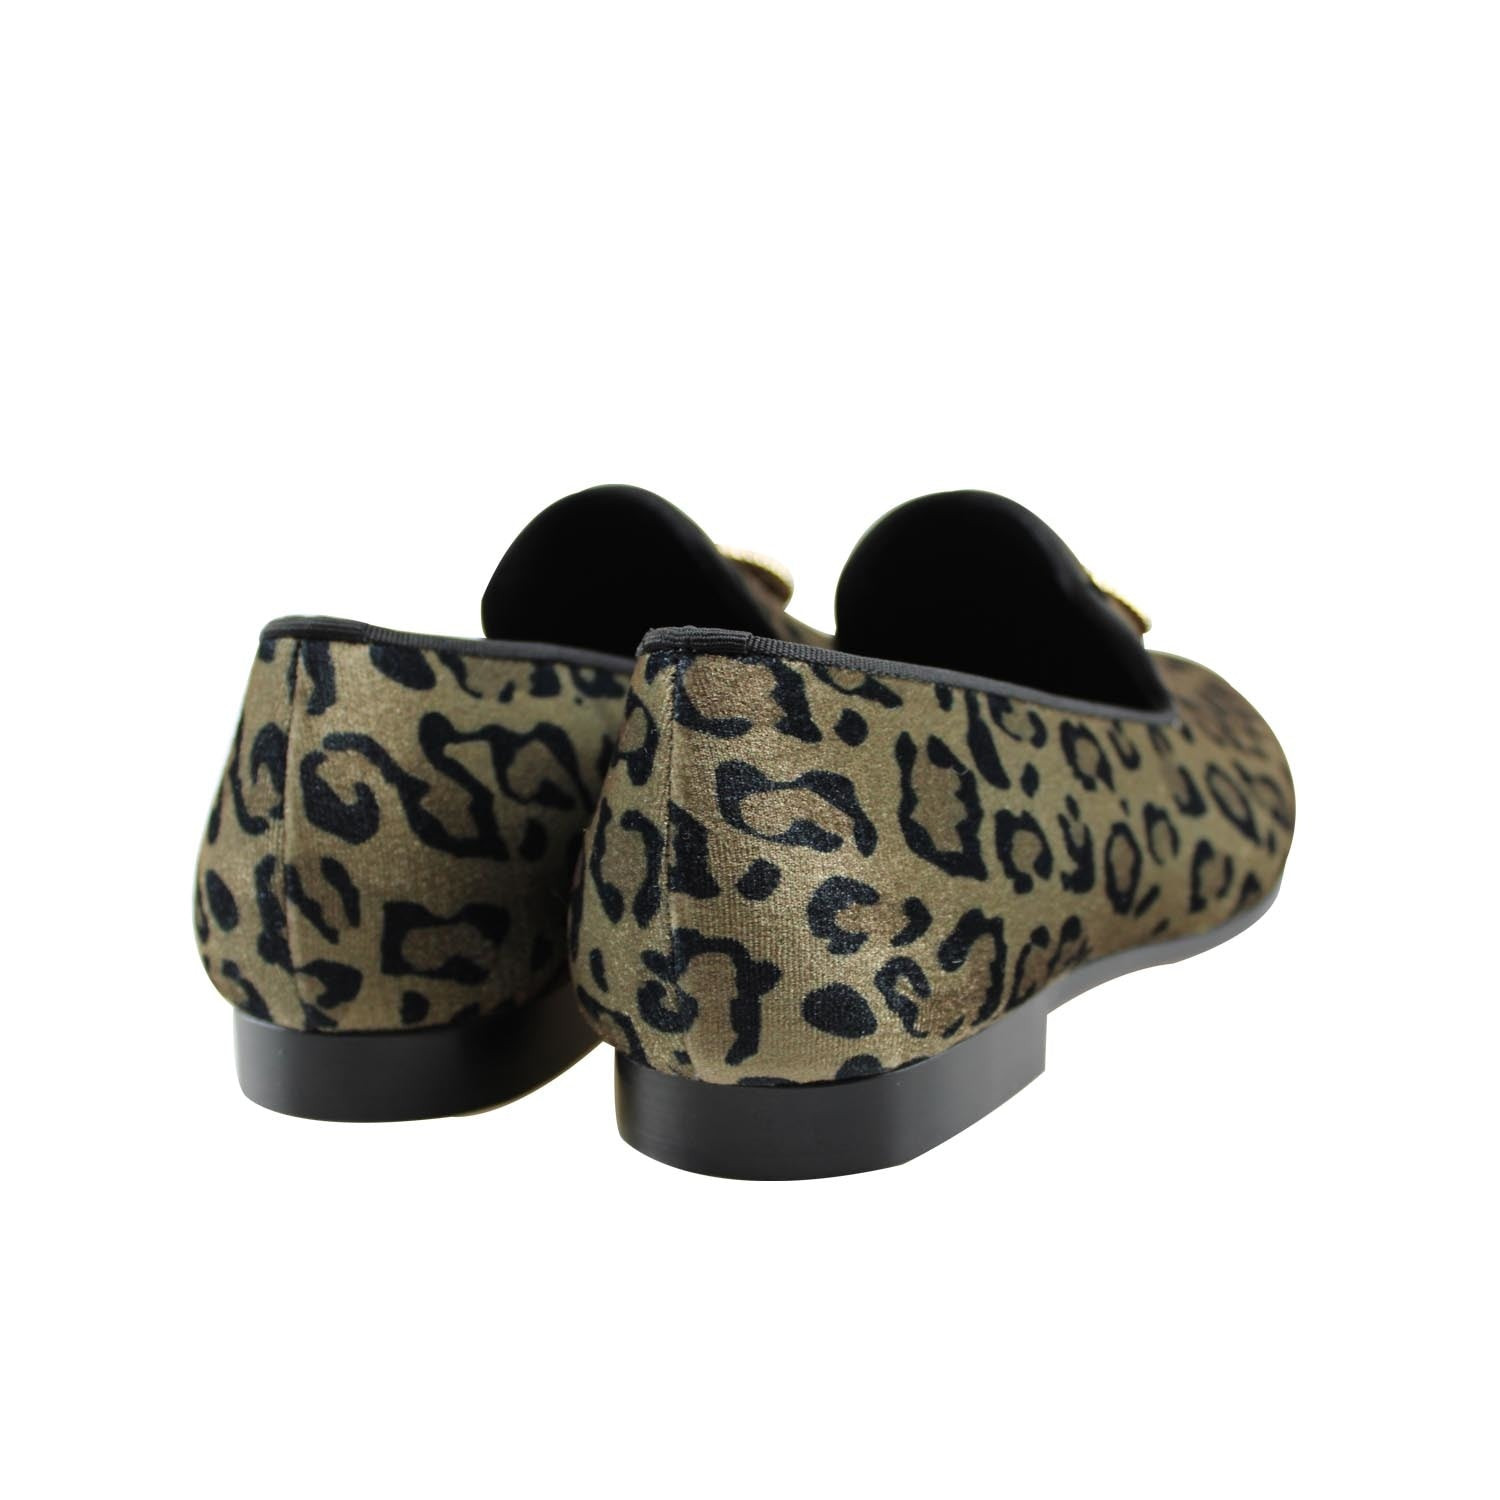 537a105e555c8 Velvet Leopard Print with Lion Emblem Men Loafers Shoes – FanFreakz